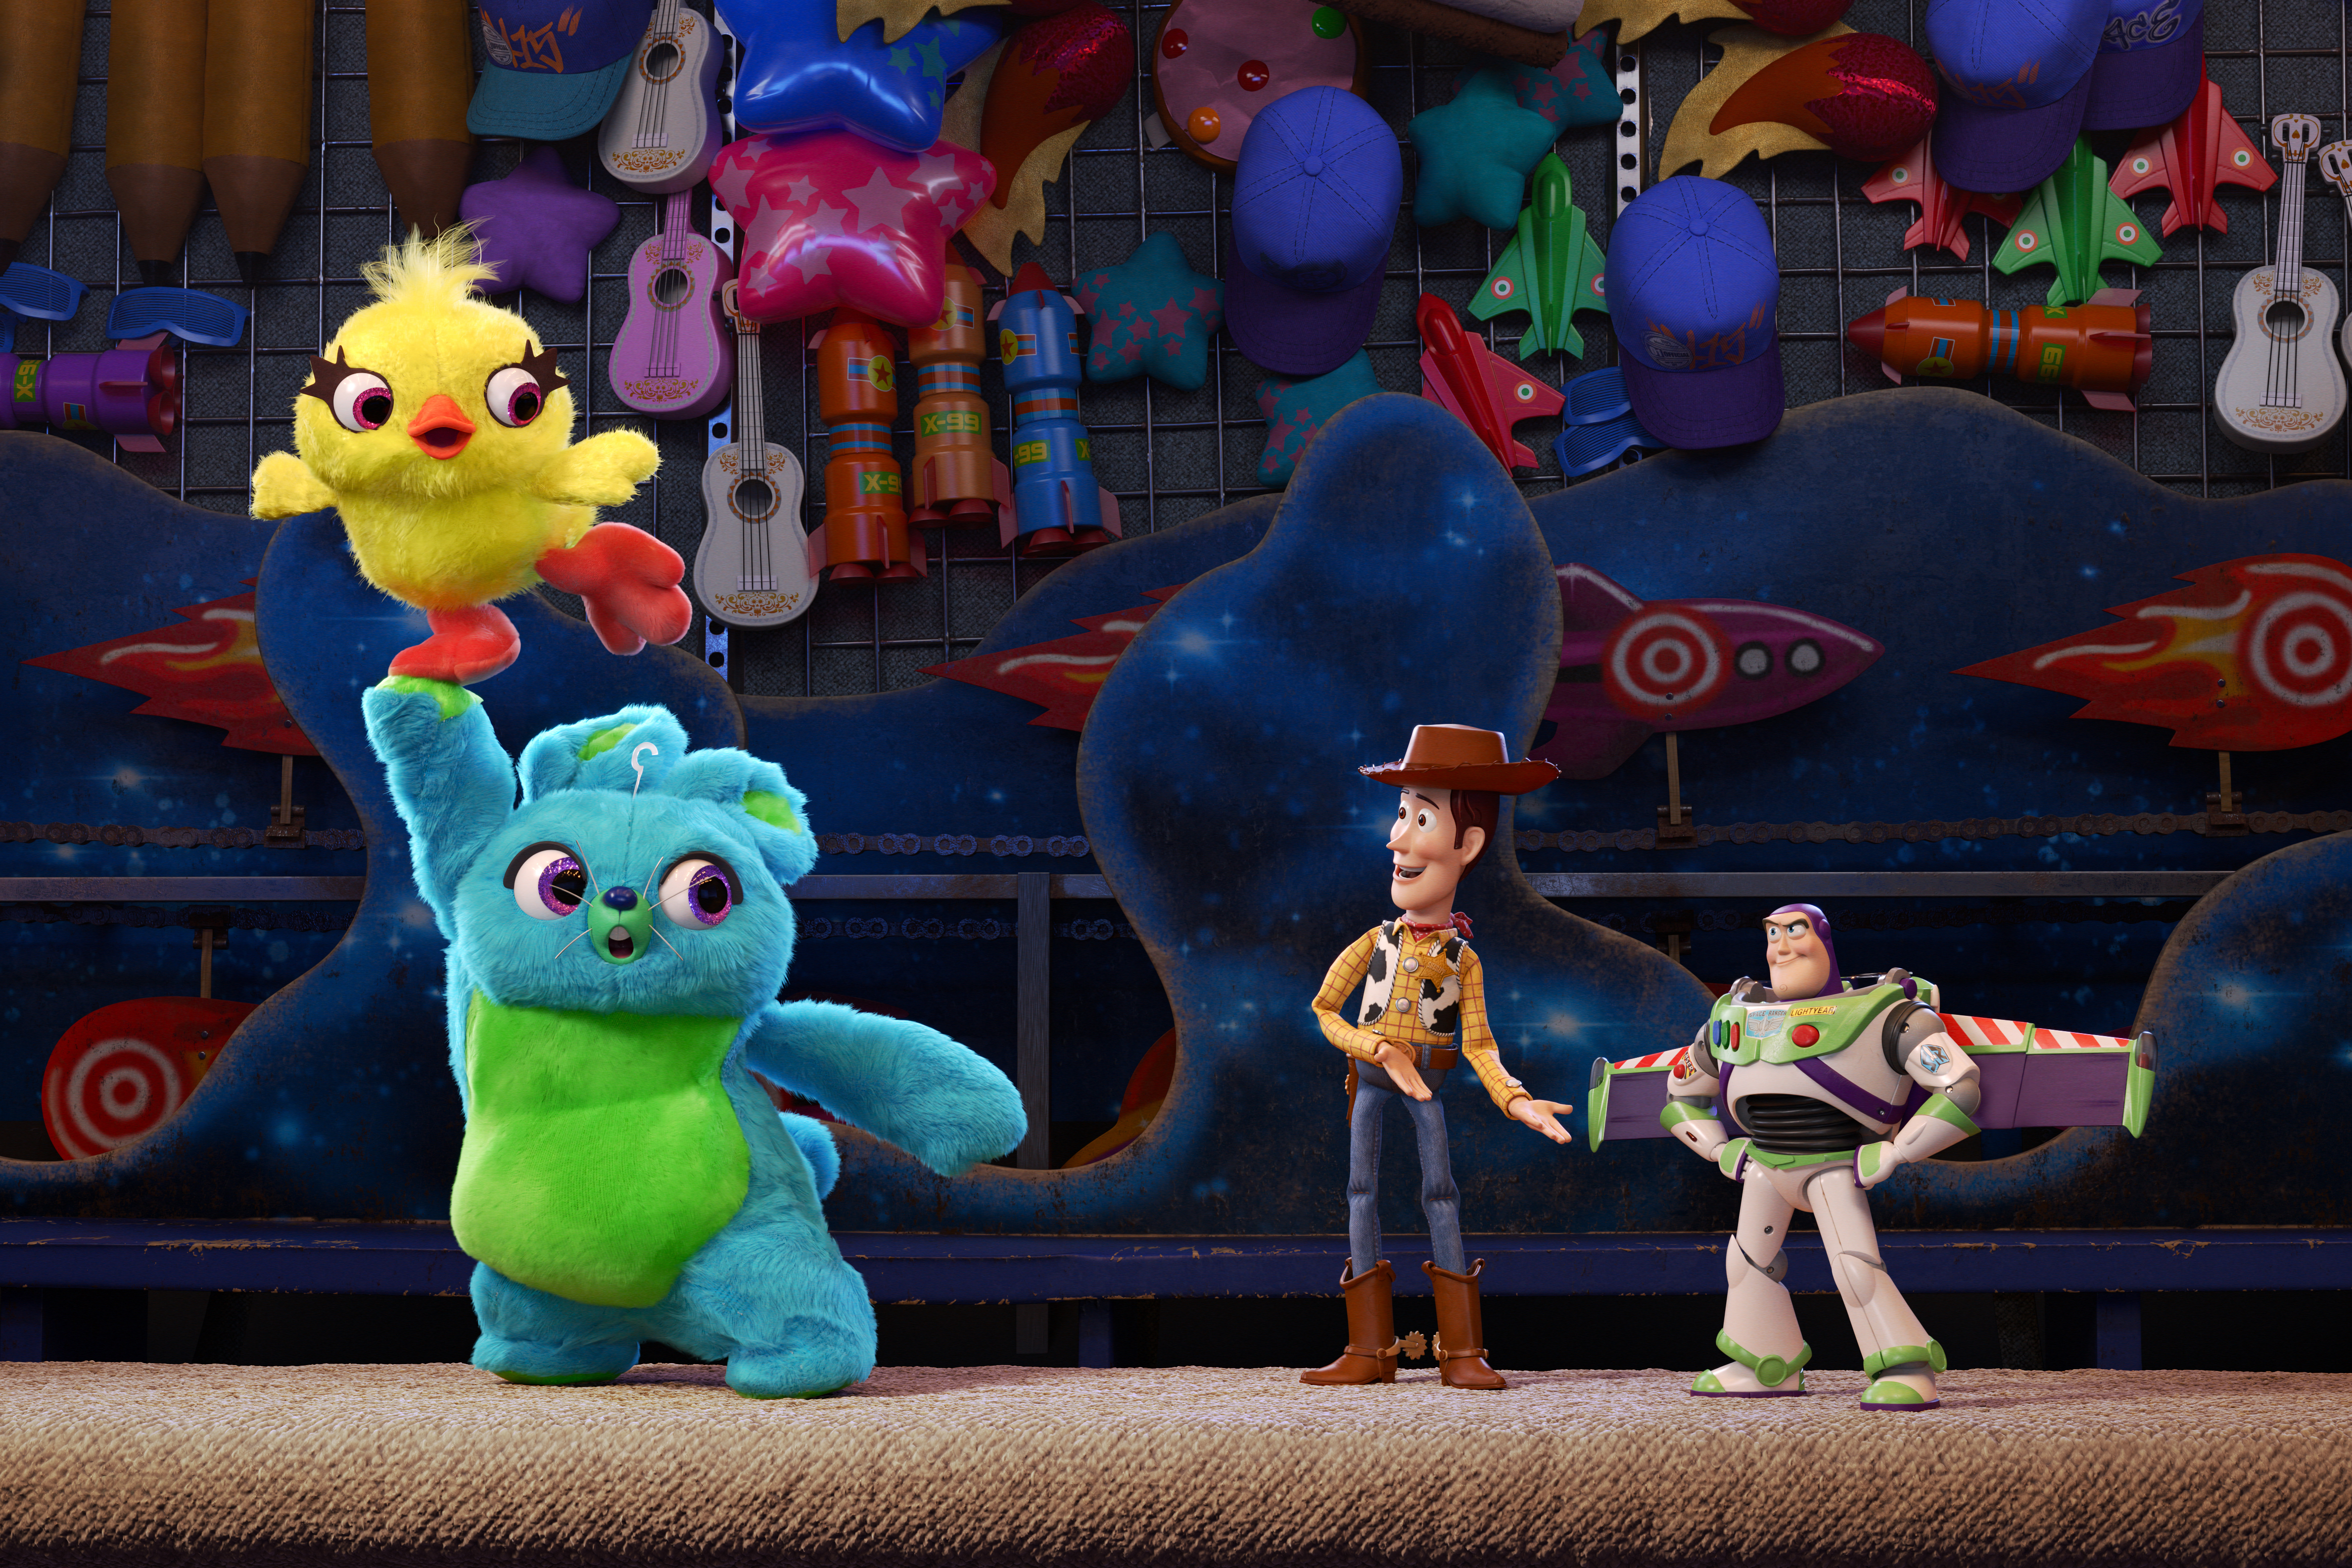 "PICK ME! -- Ducky and Bunny are carnival prizes who are eager to be won. But when their plans are rudely interrupted, they find themselves on an unexpected adventure with a group of toys who have no idea what it feels like to be tacked to a prize wall. Funny men Keegan-Michael Key and Jordan Peele provide the voices of Ducky and Bunny, respectively. Directed by Josh Cooley (""Riley's First Date?"") and produced by Jonas Rivera (""Inside Out,"" ""Up"") and Mark Nielsen (associate producer ""Inside Out""), ""Toy Story 4"" ventures to U.S. theaters on June 21, 2019. ©2018 Disney•Pixar. All Rights Reserved."